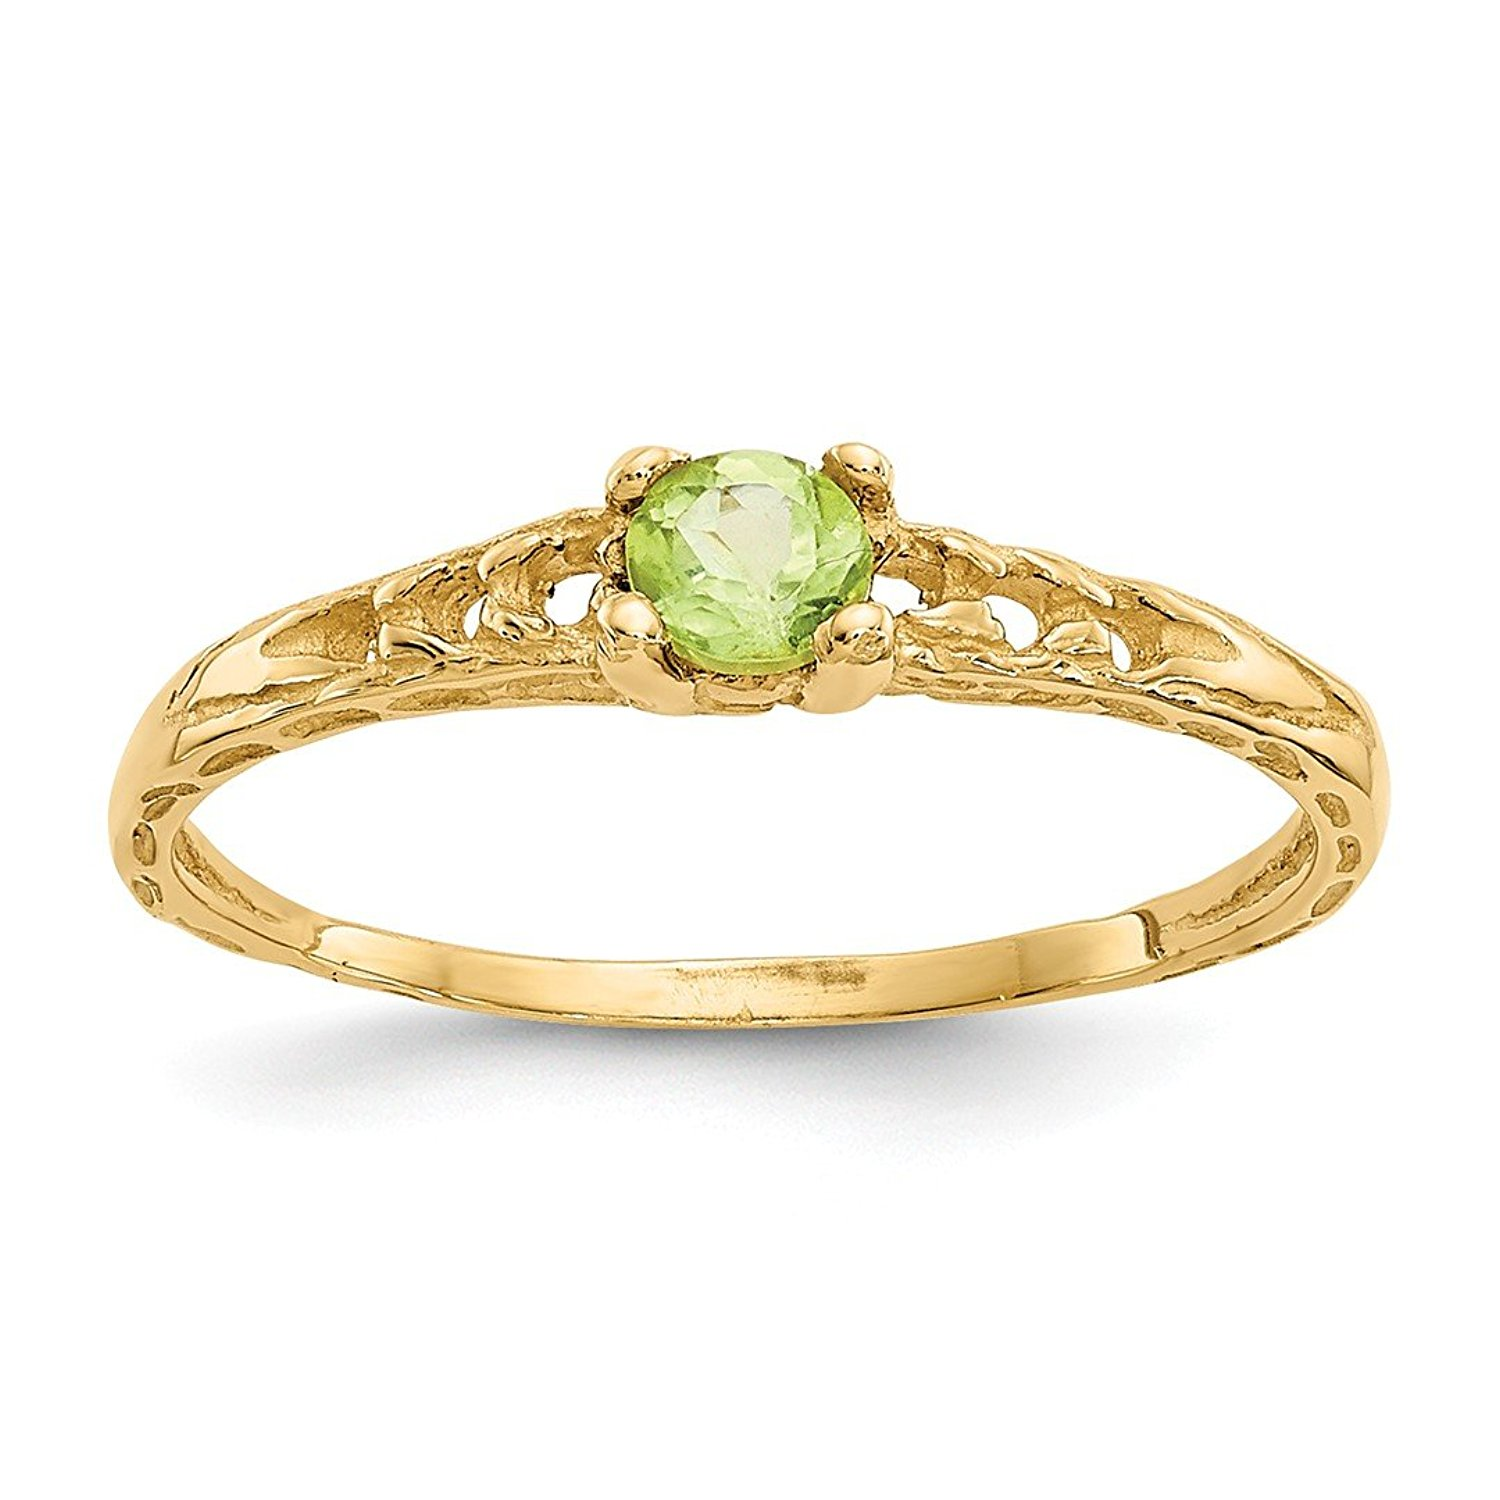 13a5465d84d054 Get Quotations · ICE CARATS 14kt Yellow Gold 3mm Green Peridot Birthstone  Baby Band Ring August Fine Jewelry Ideal